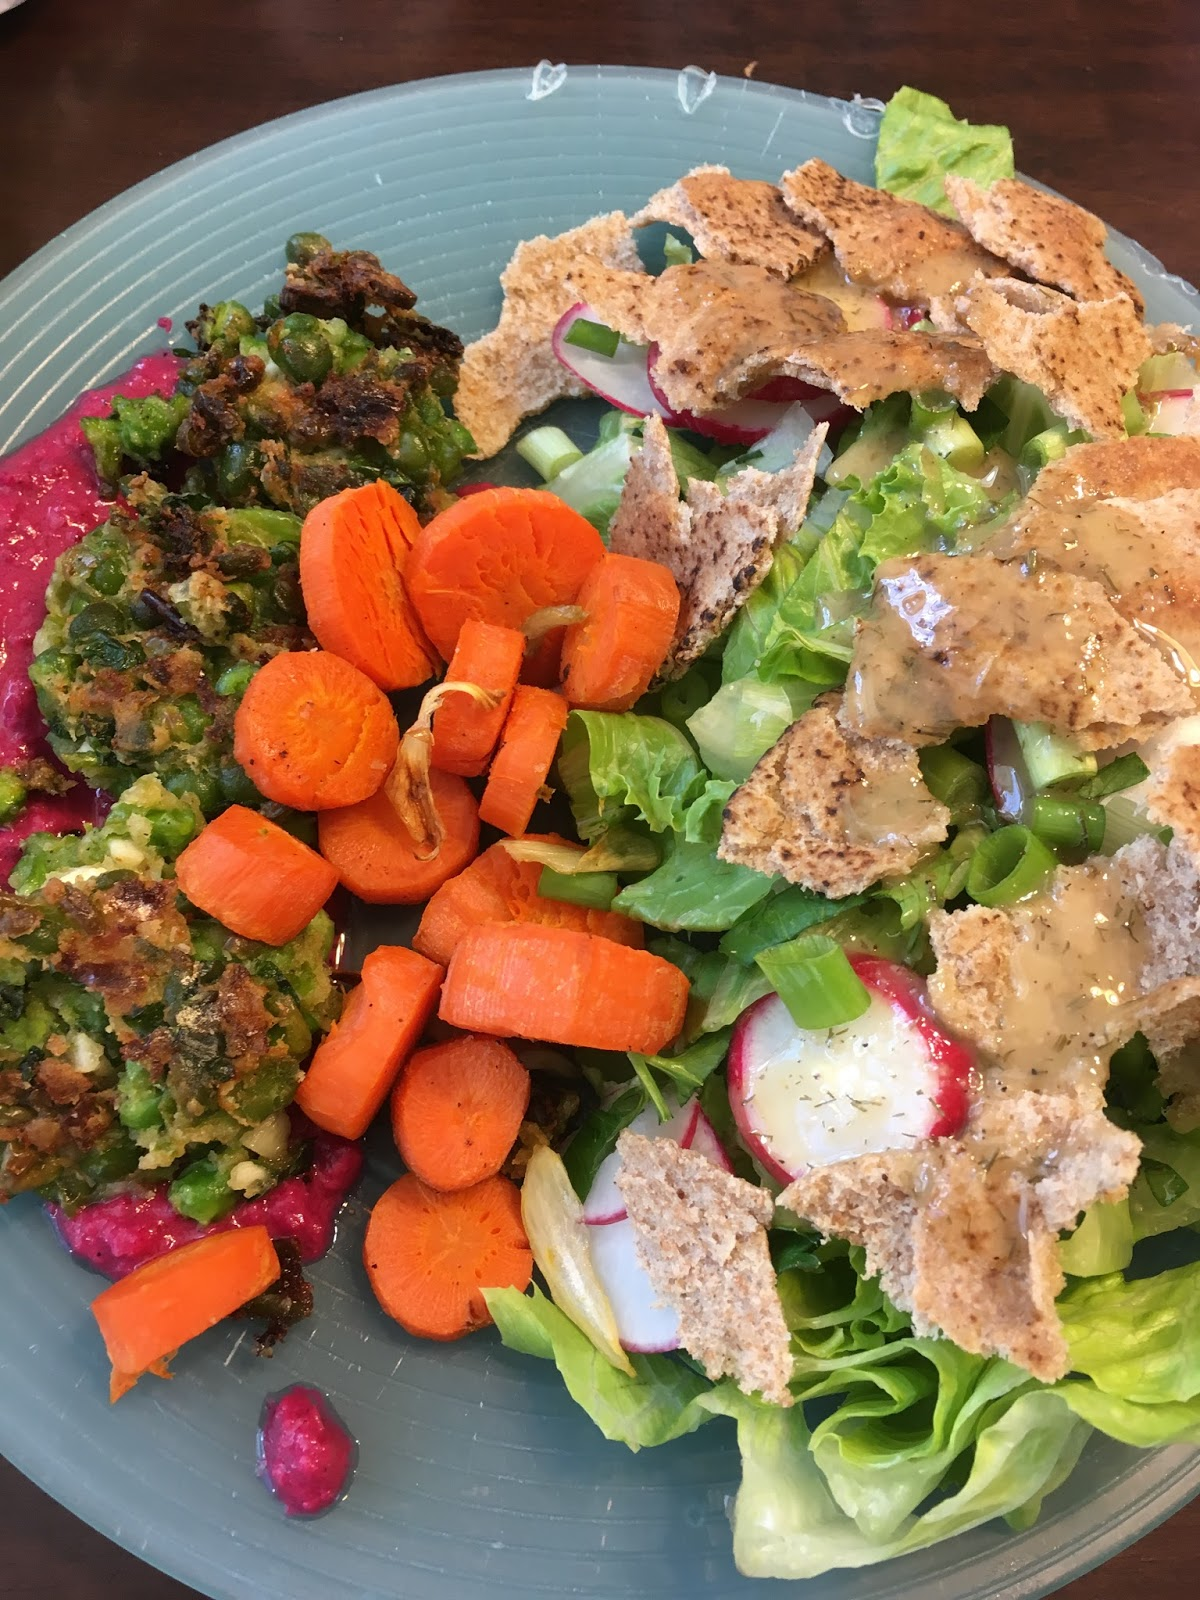 Blue apron vs green chef